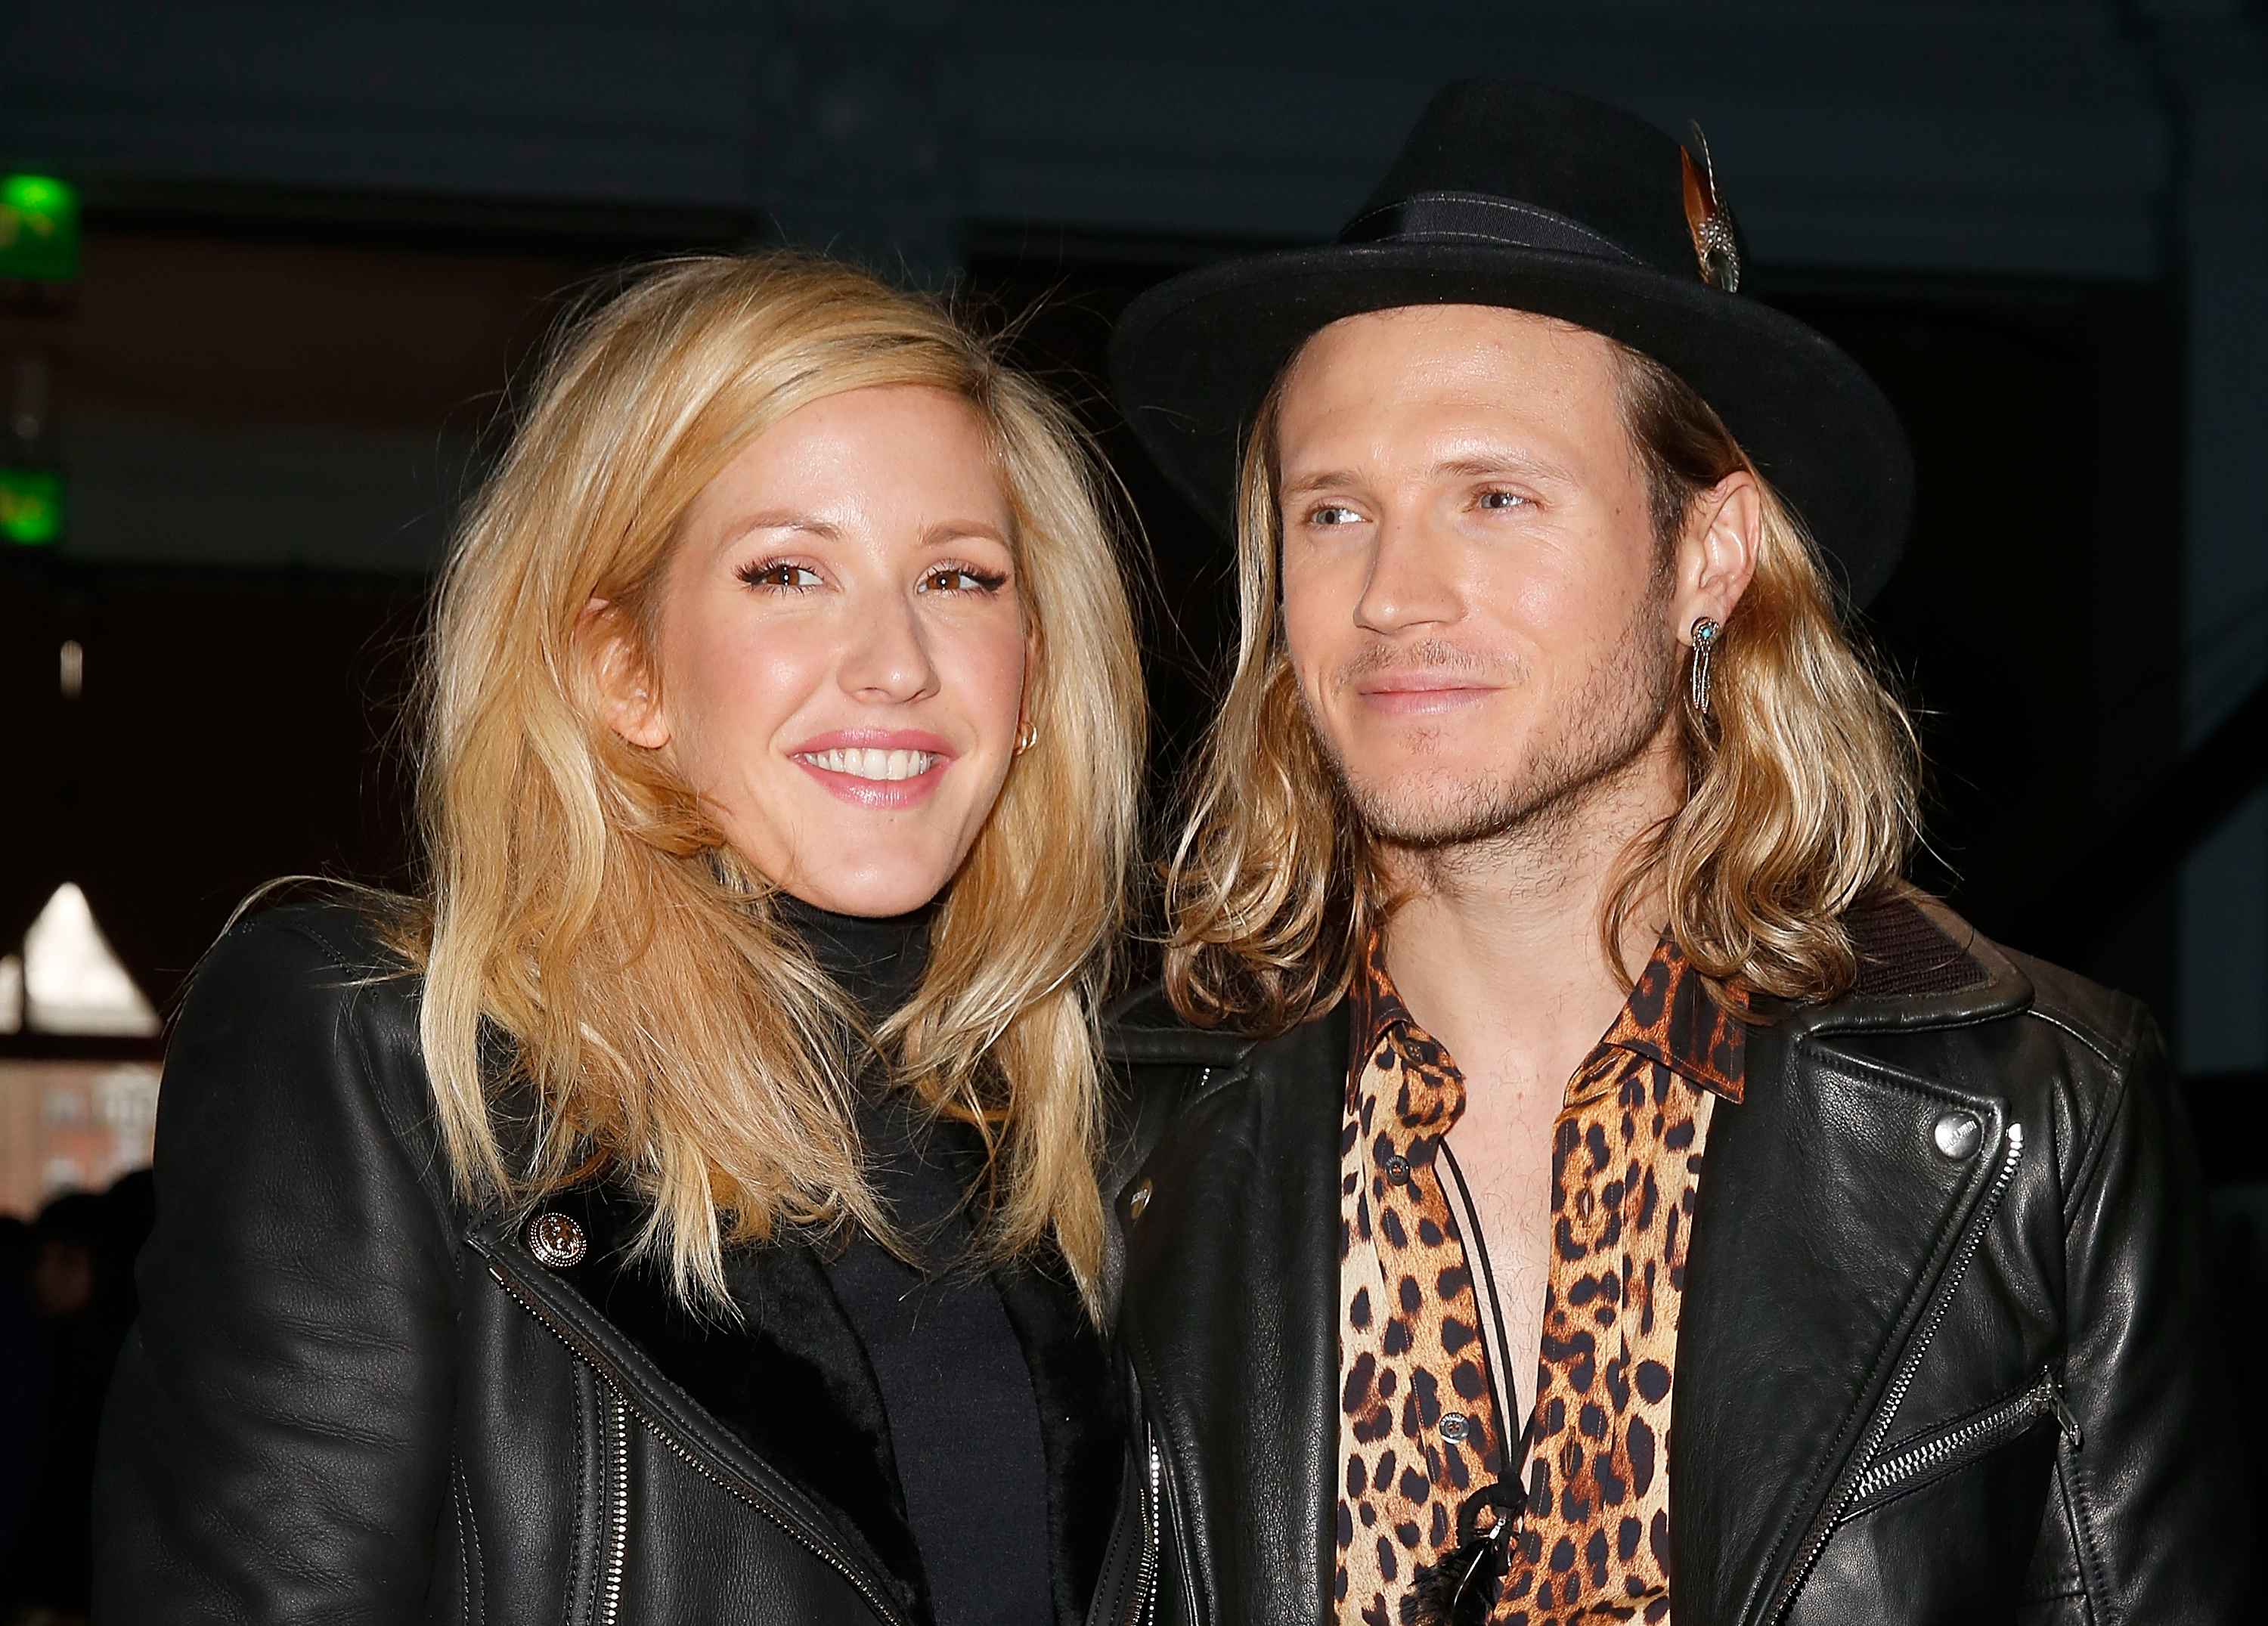 Ellie Goulding & Dougie Poynter at Front Row: Day